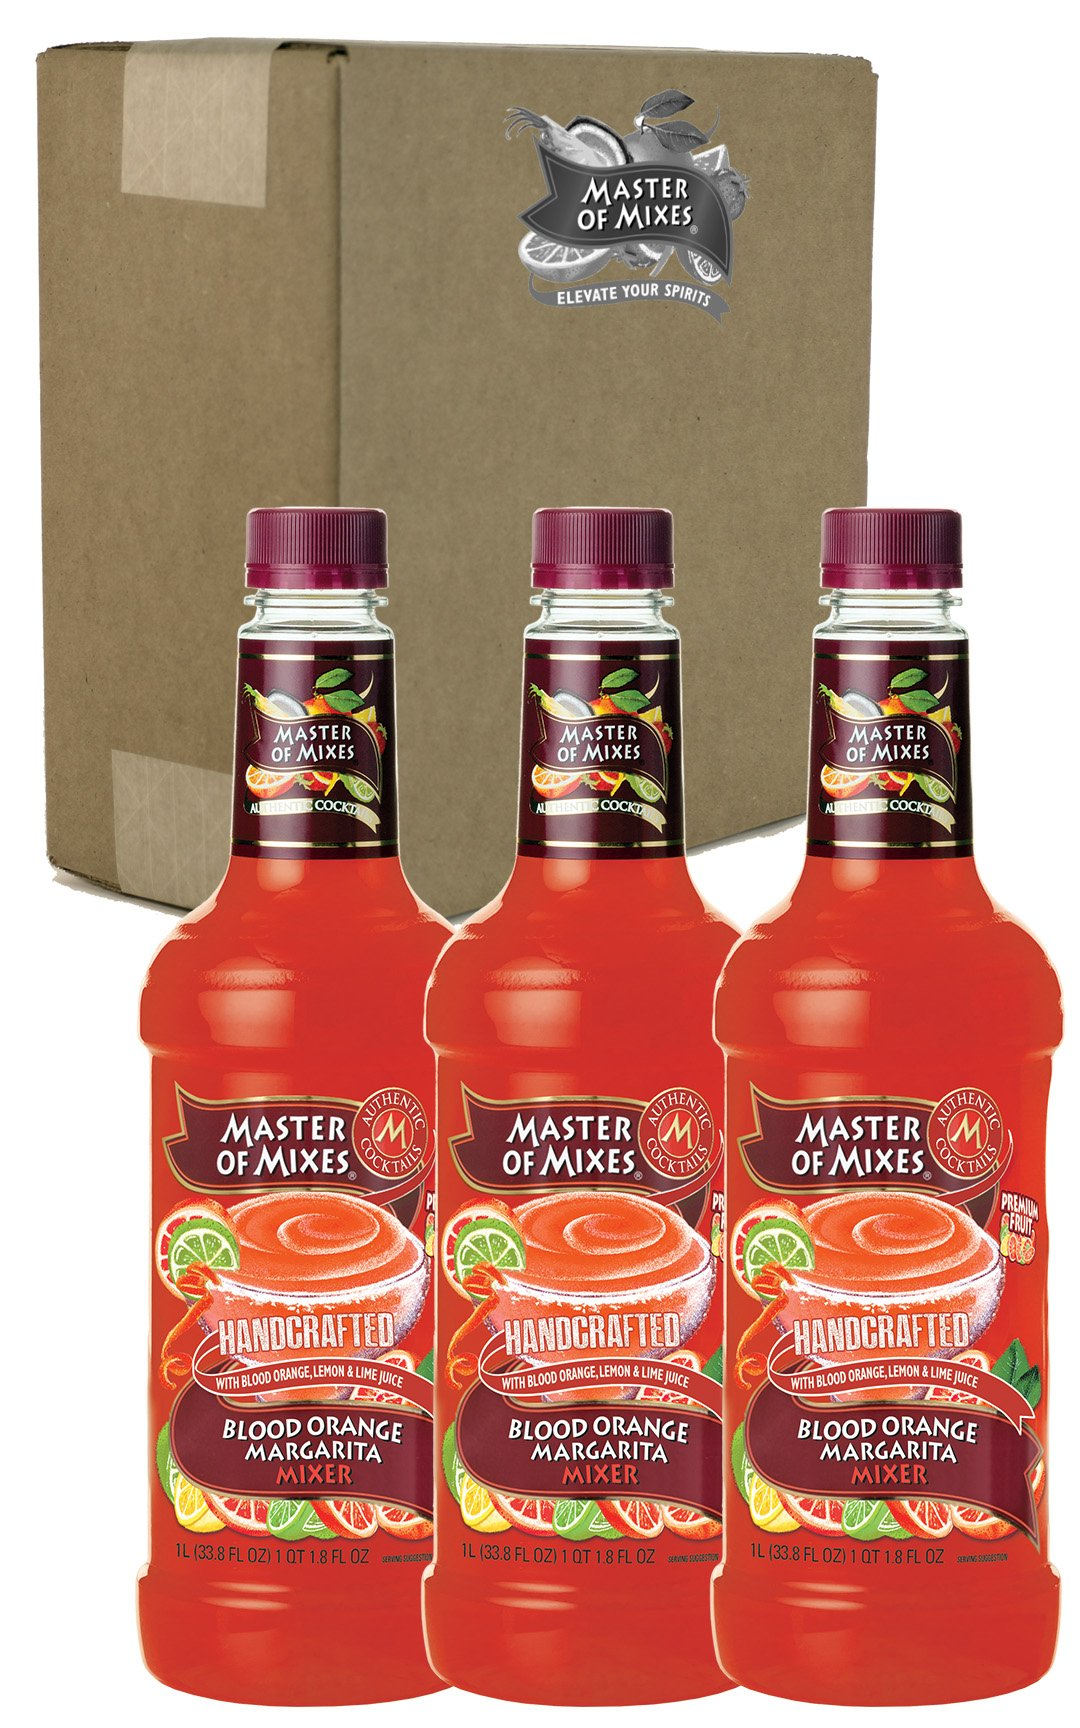 Master of Mixes Blood Orange Margarita Drink Mix, Ready To Use, 1 Liter Bottle (33.8 Fl Oz), Pack of 3 by Master of Mixes